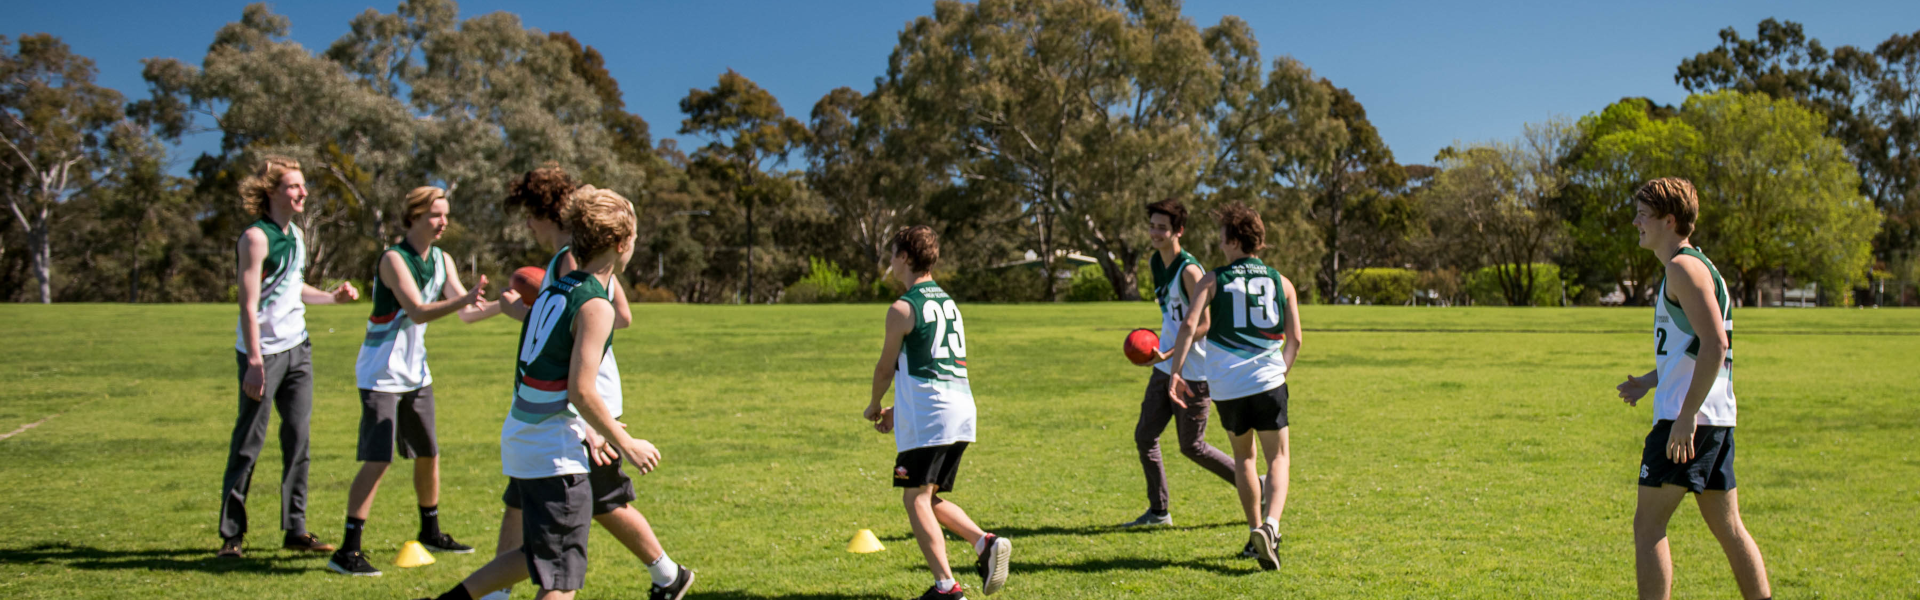 Blackwood High School Public South Australia Australia Students Playing Sports